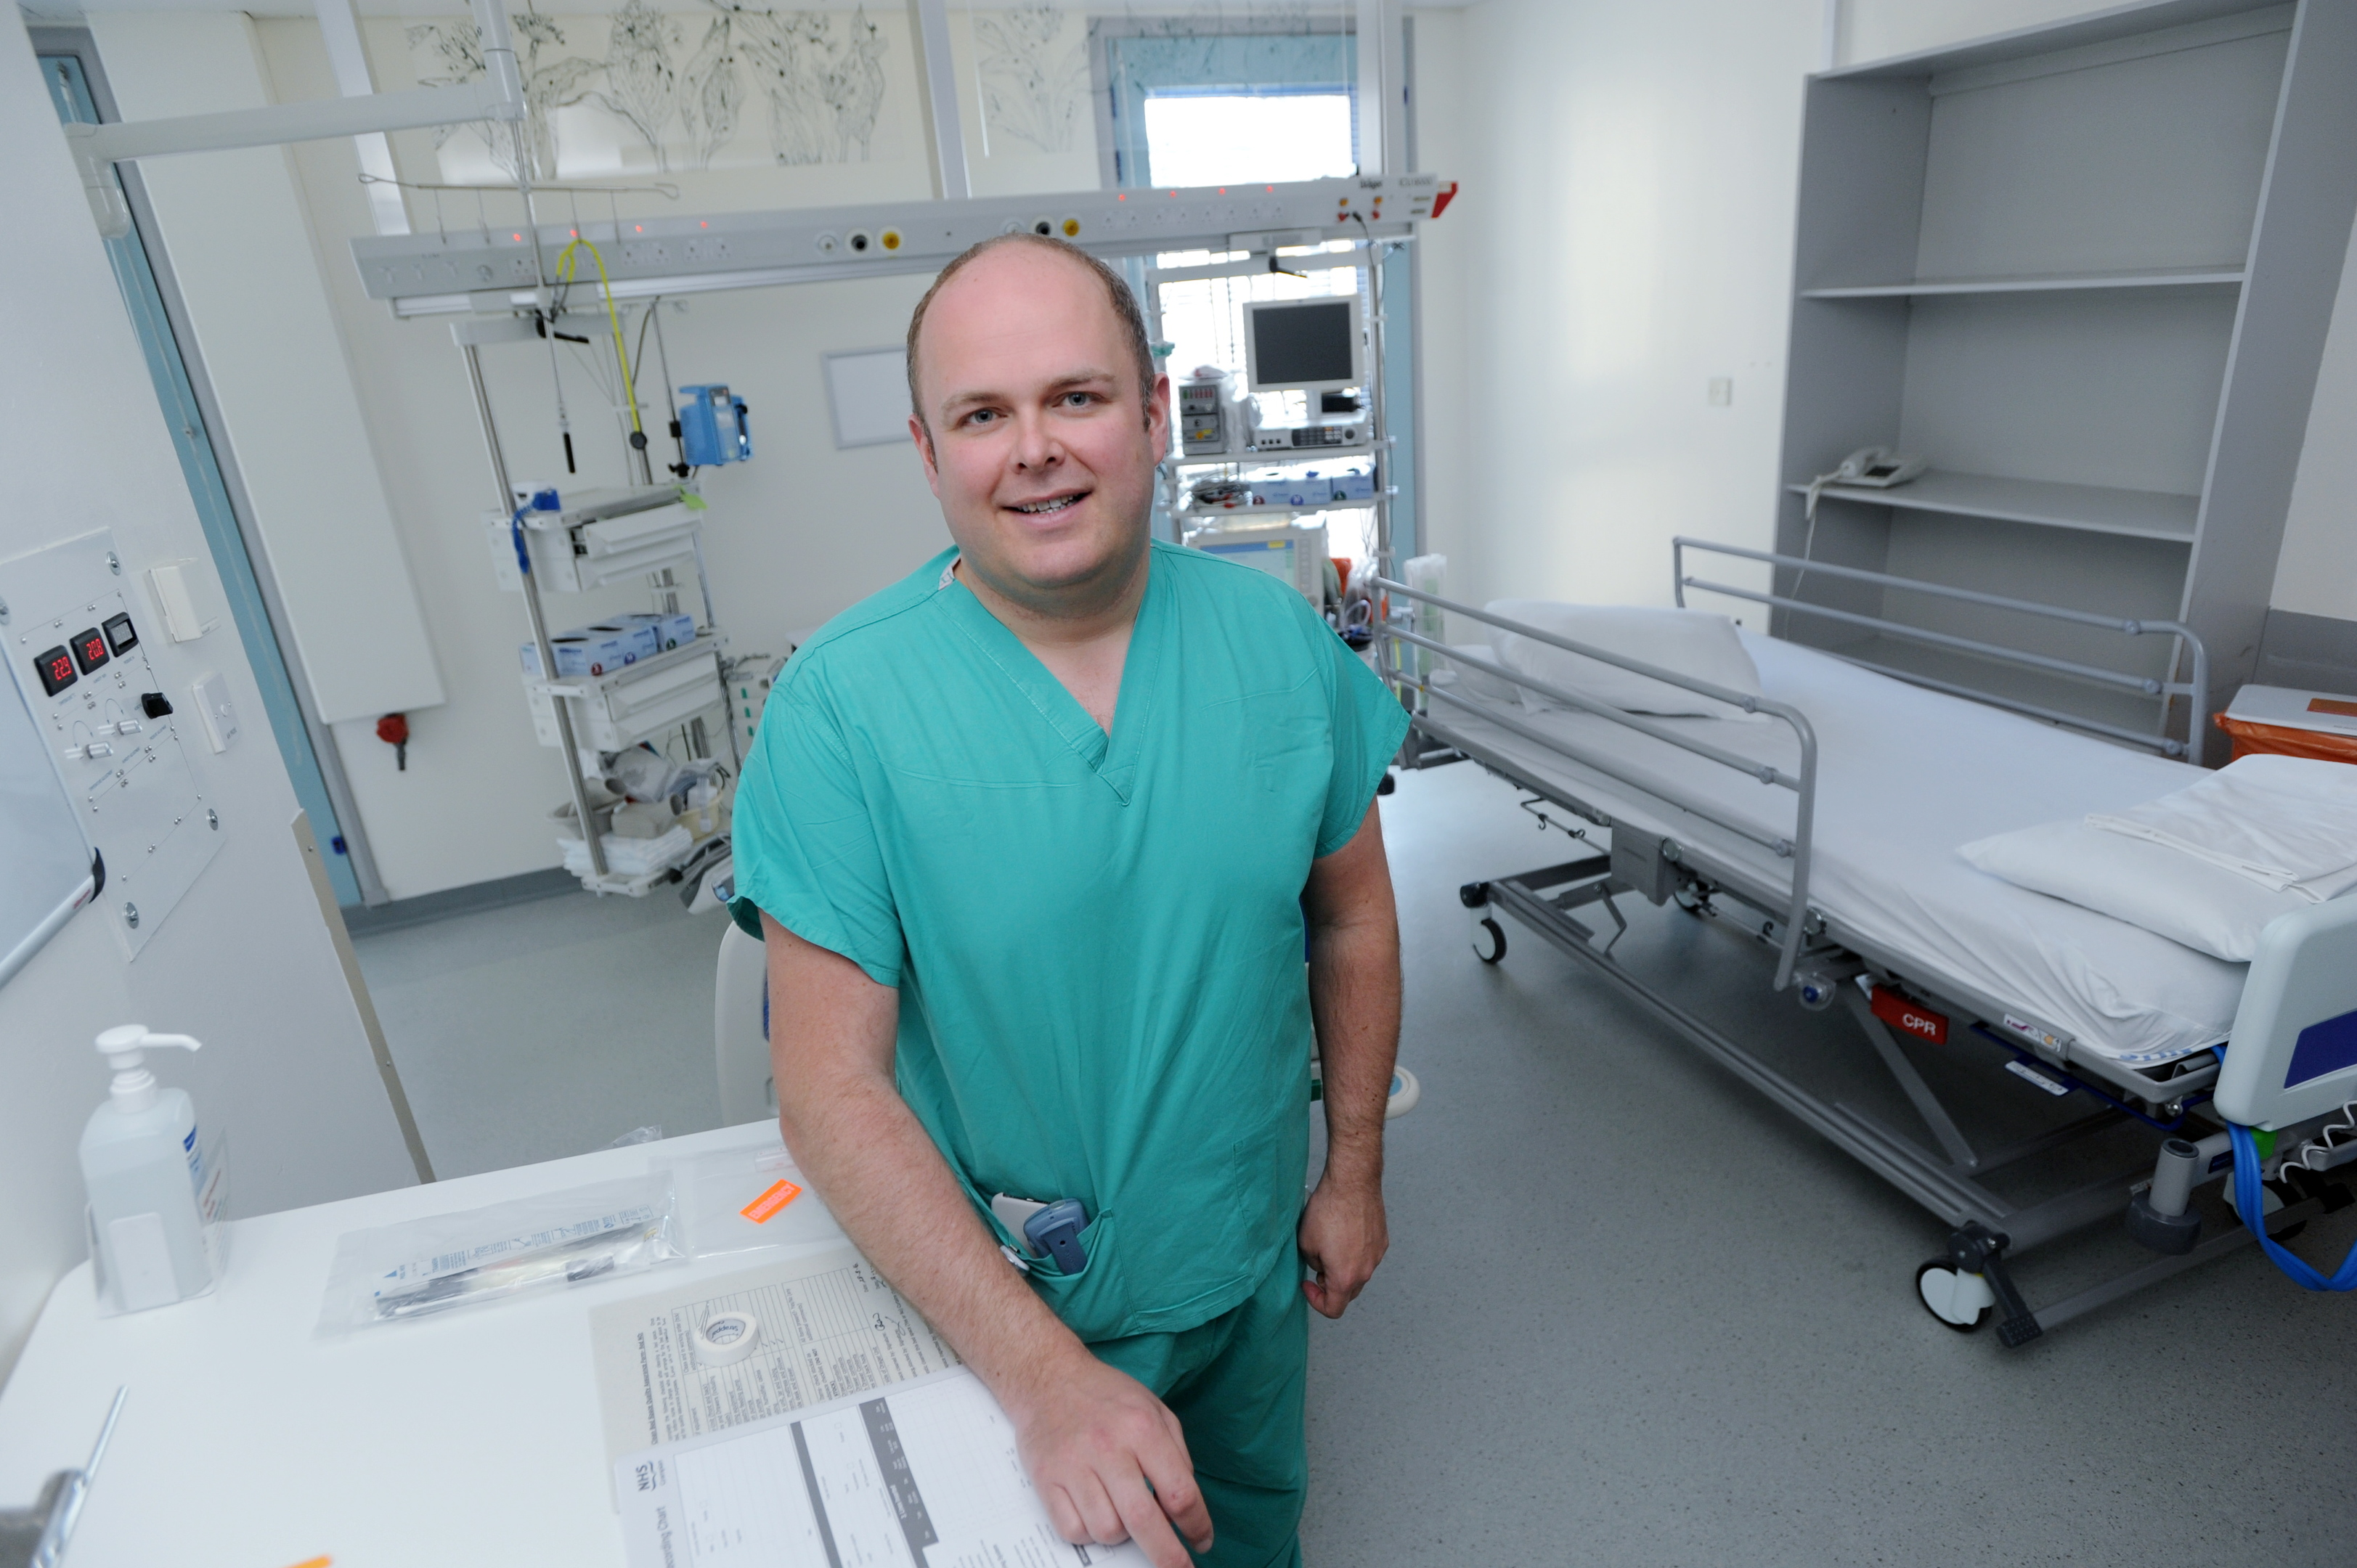 Iain MacLeod, consultant surgeon at ARI, hopes more people will sign up to donate organs and save lives.